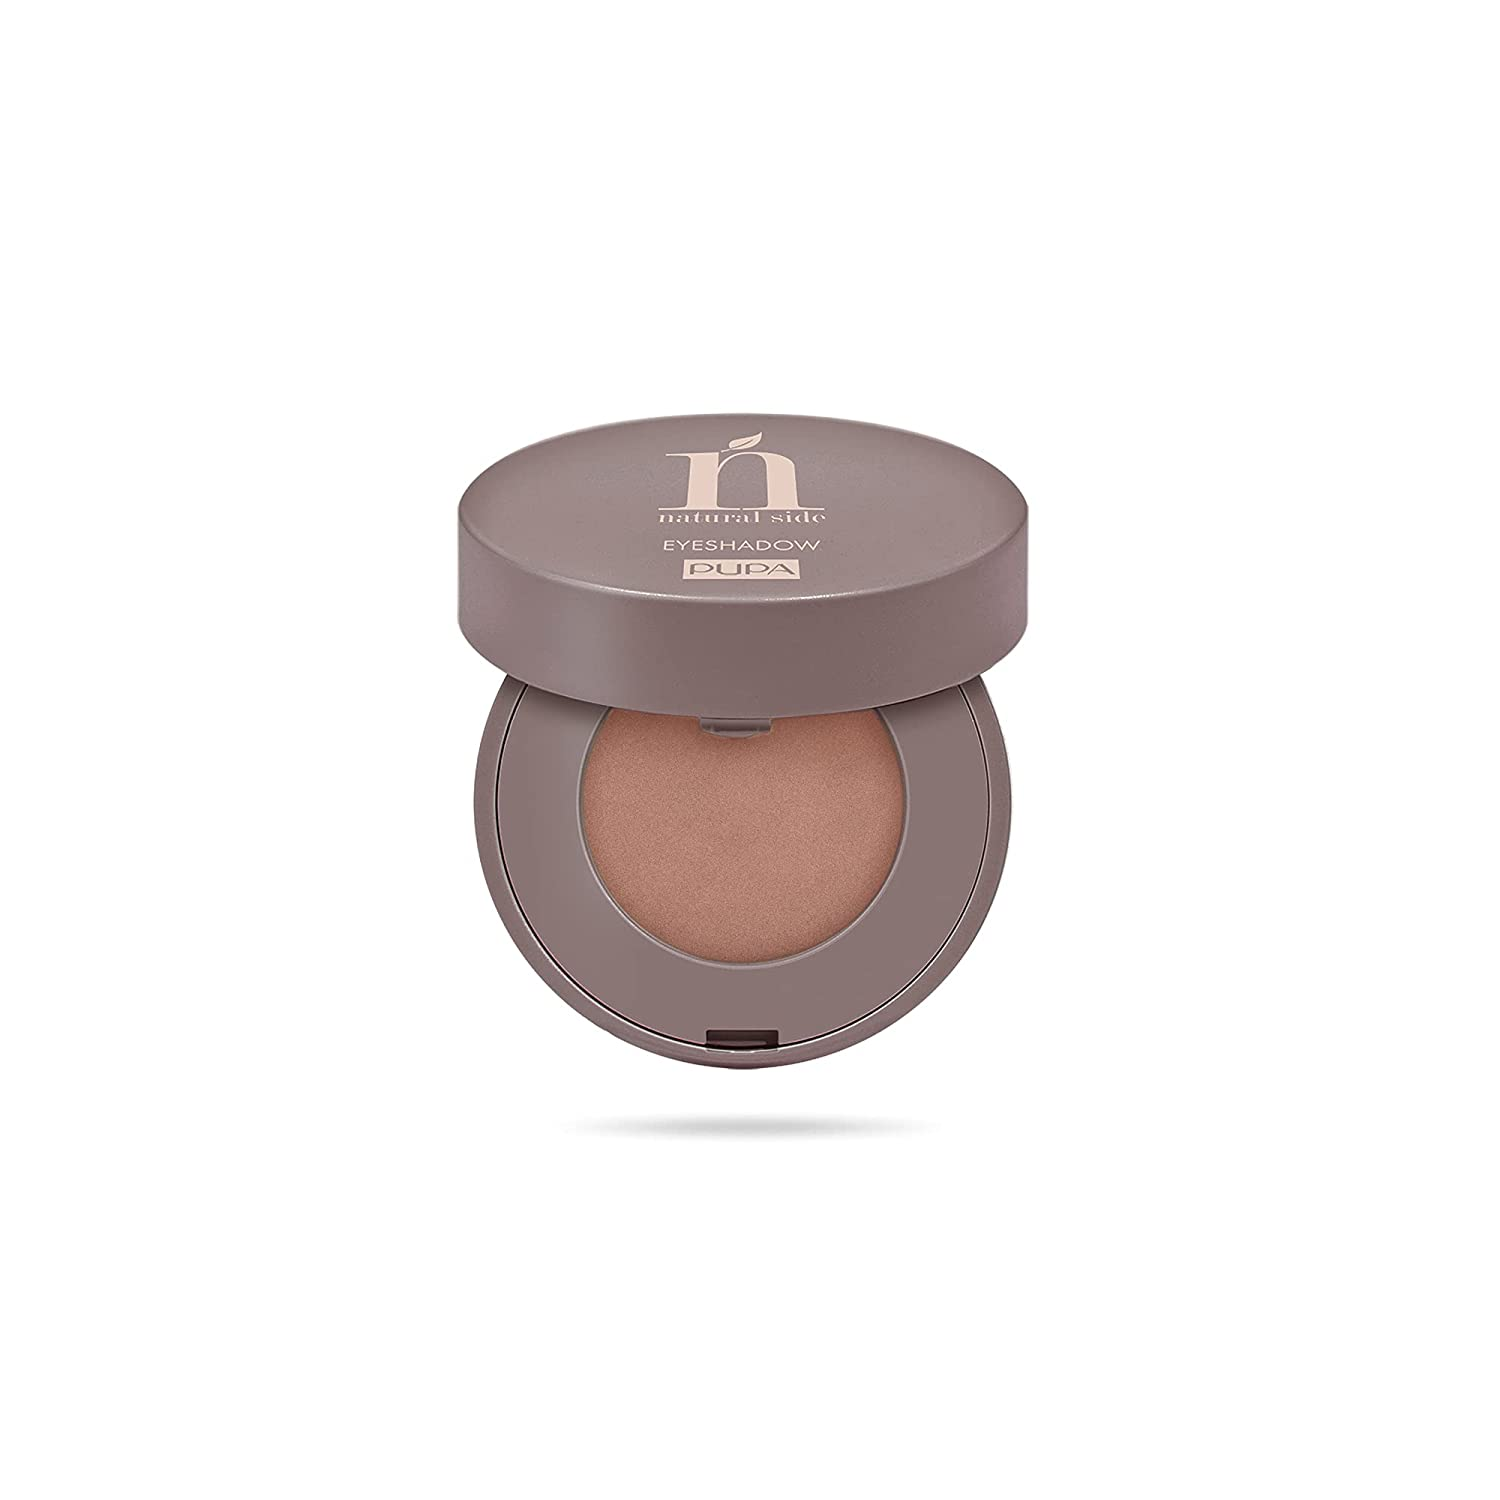 Natural Side Compact Eyeshadow – 006 Golden Rose by Pupa Milano for Women – 0.07 oz Eye Shadow